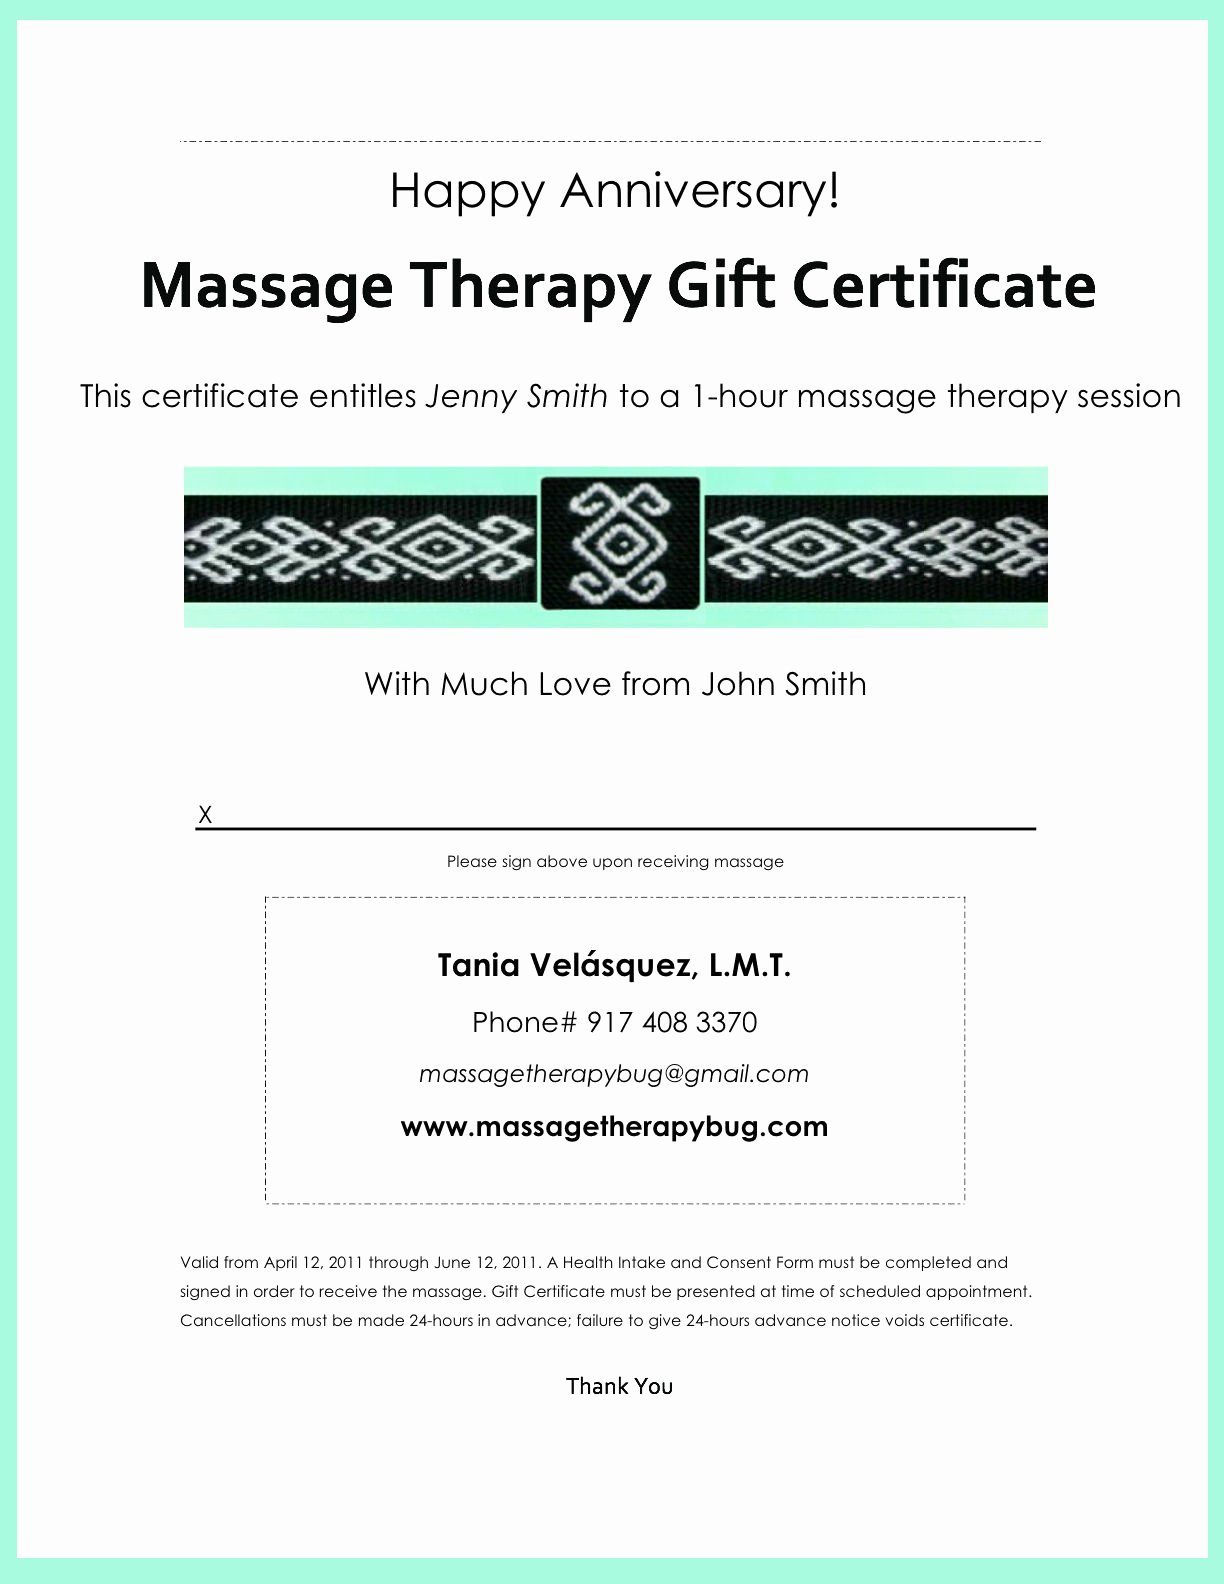 Sample Gift Certificate Wording Awesome Gift Certificates – Tania Velásquez Lmt